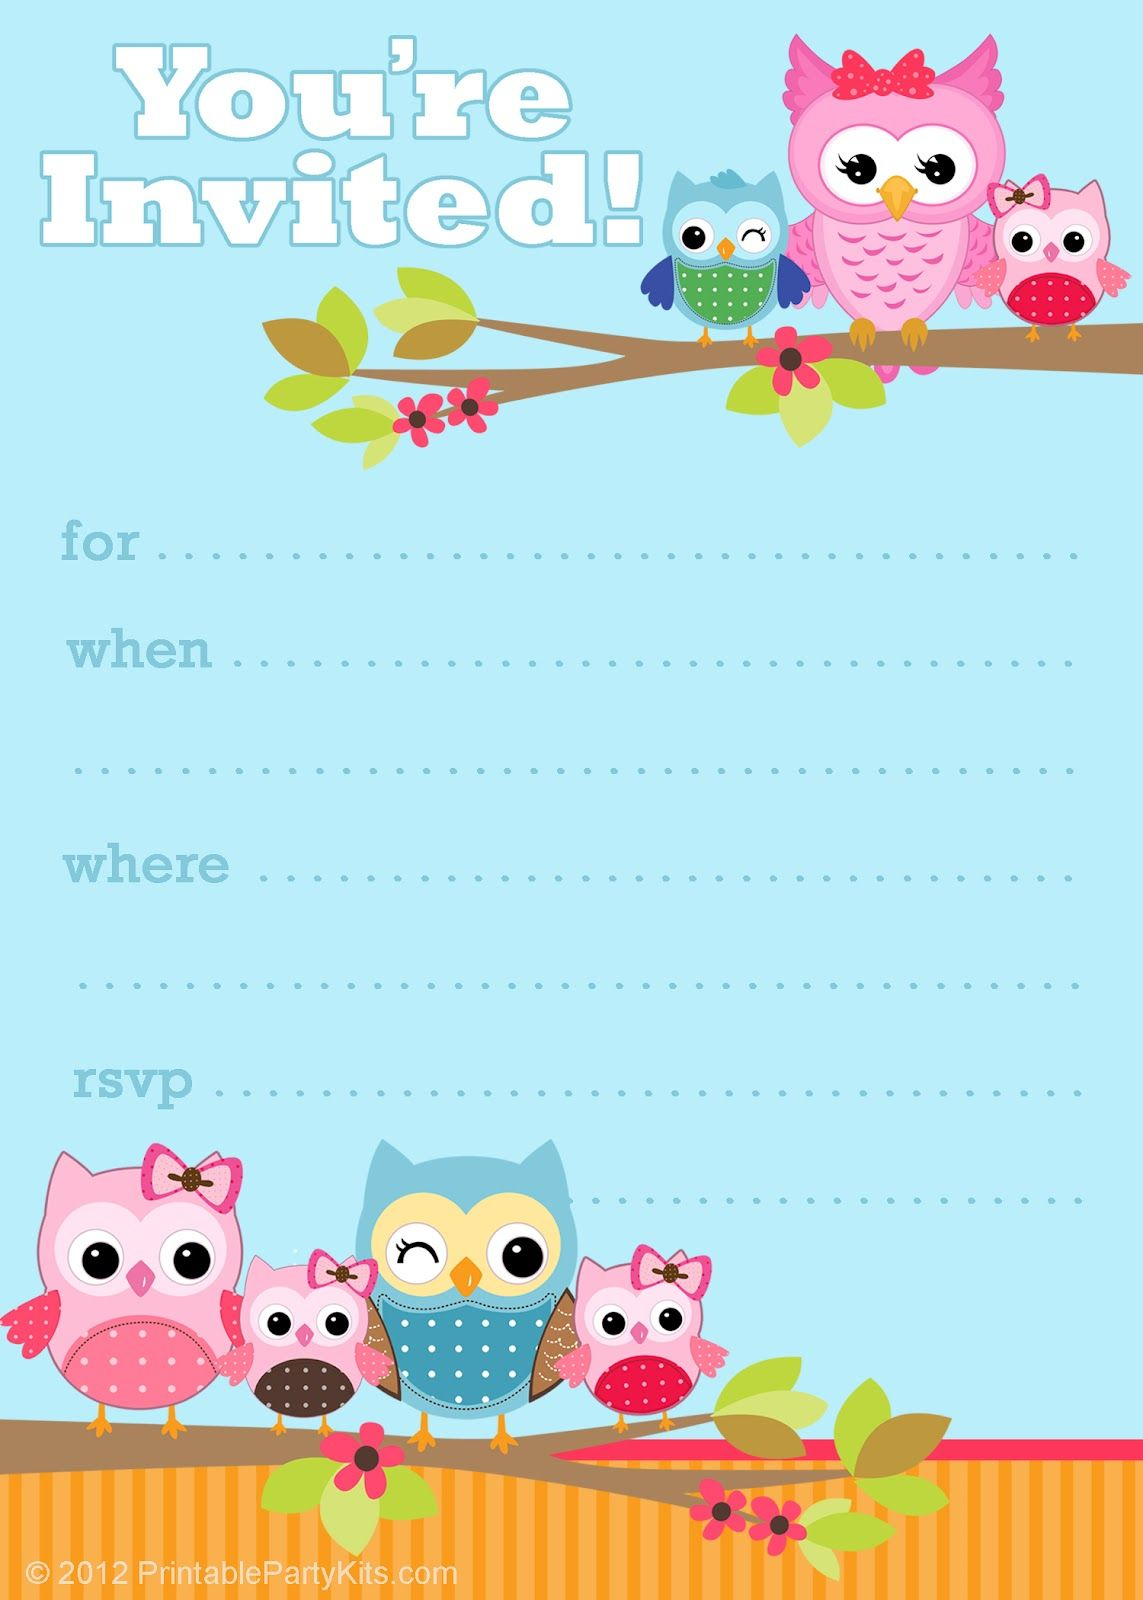 41 Printable Birthday Party Cards & Invitations For Kids To Make - Free Printable Party Invitations